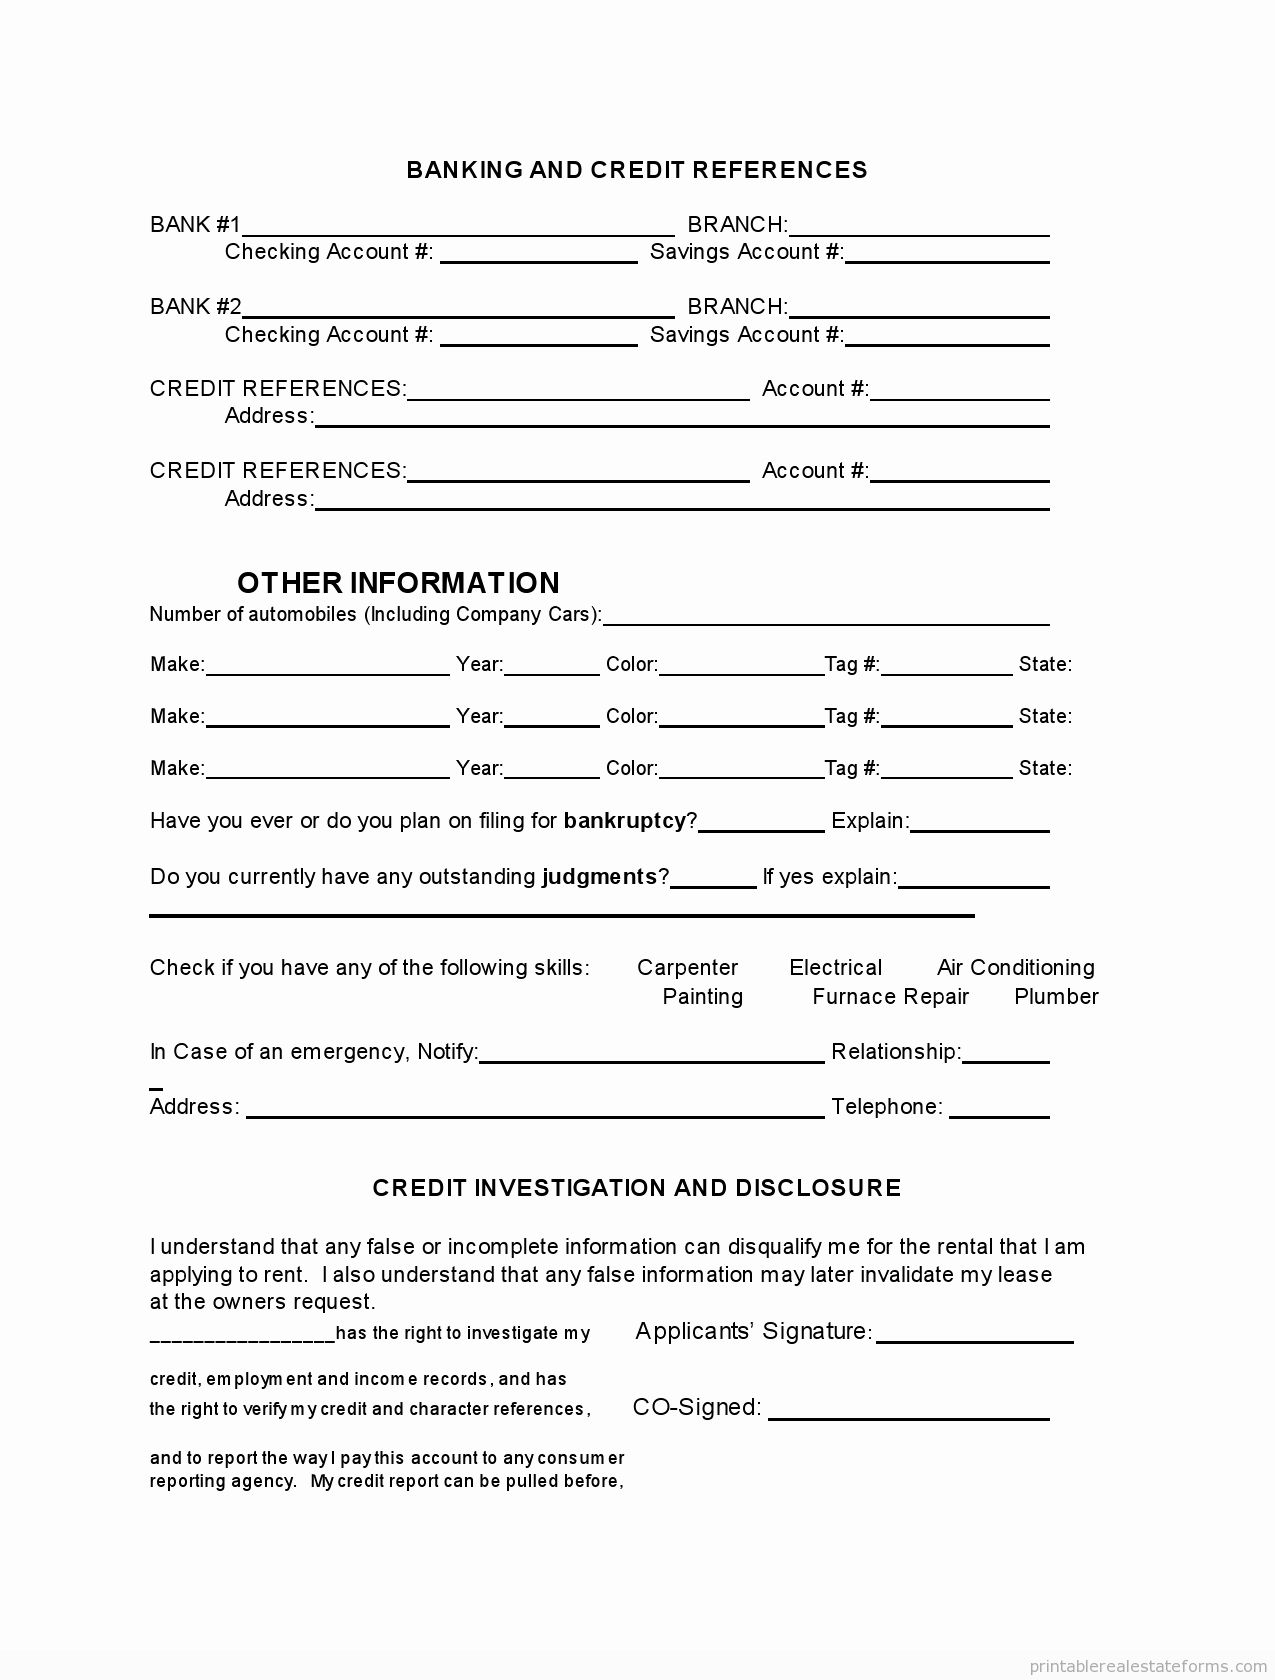 30 Tenant Information form Template in 2020 Rental